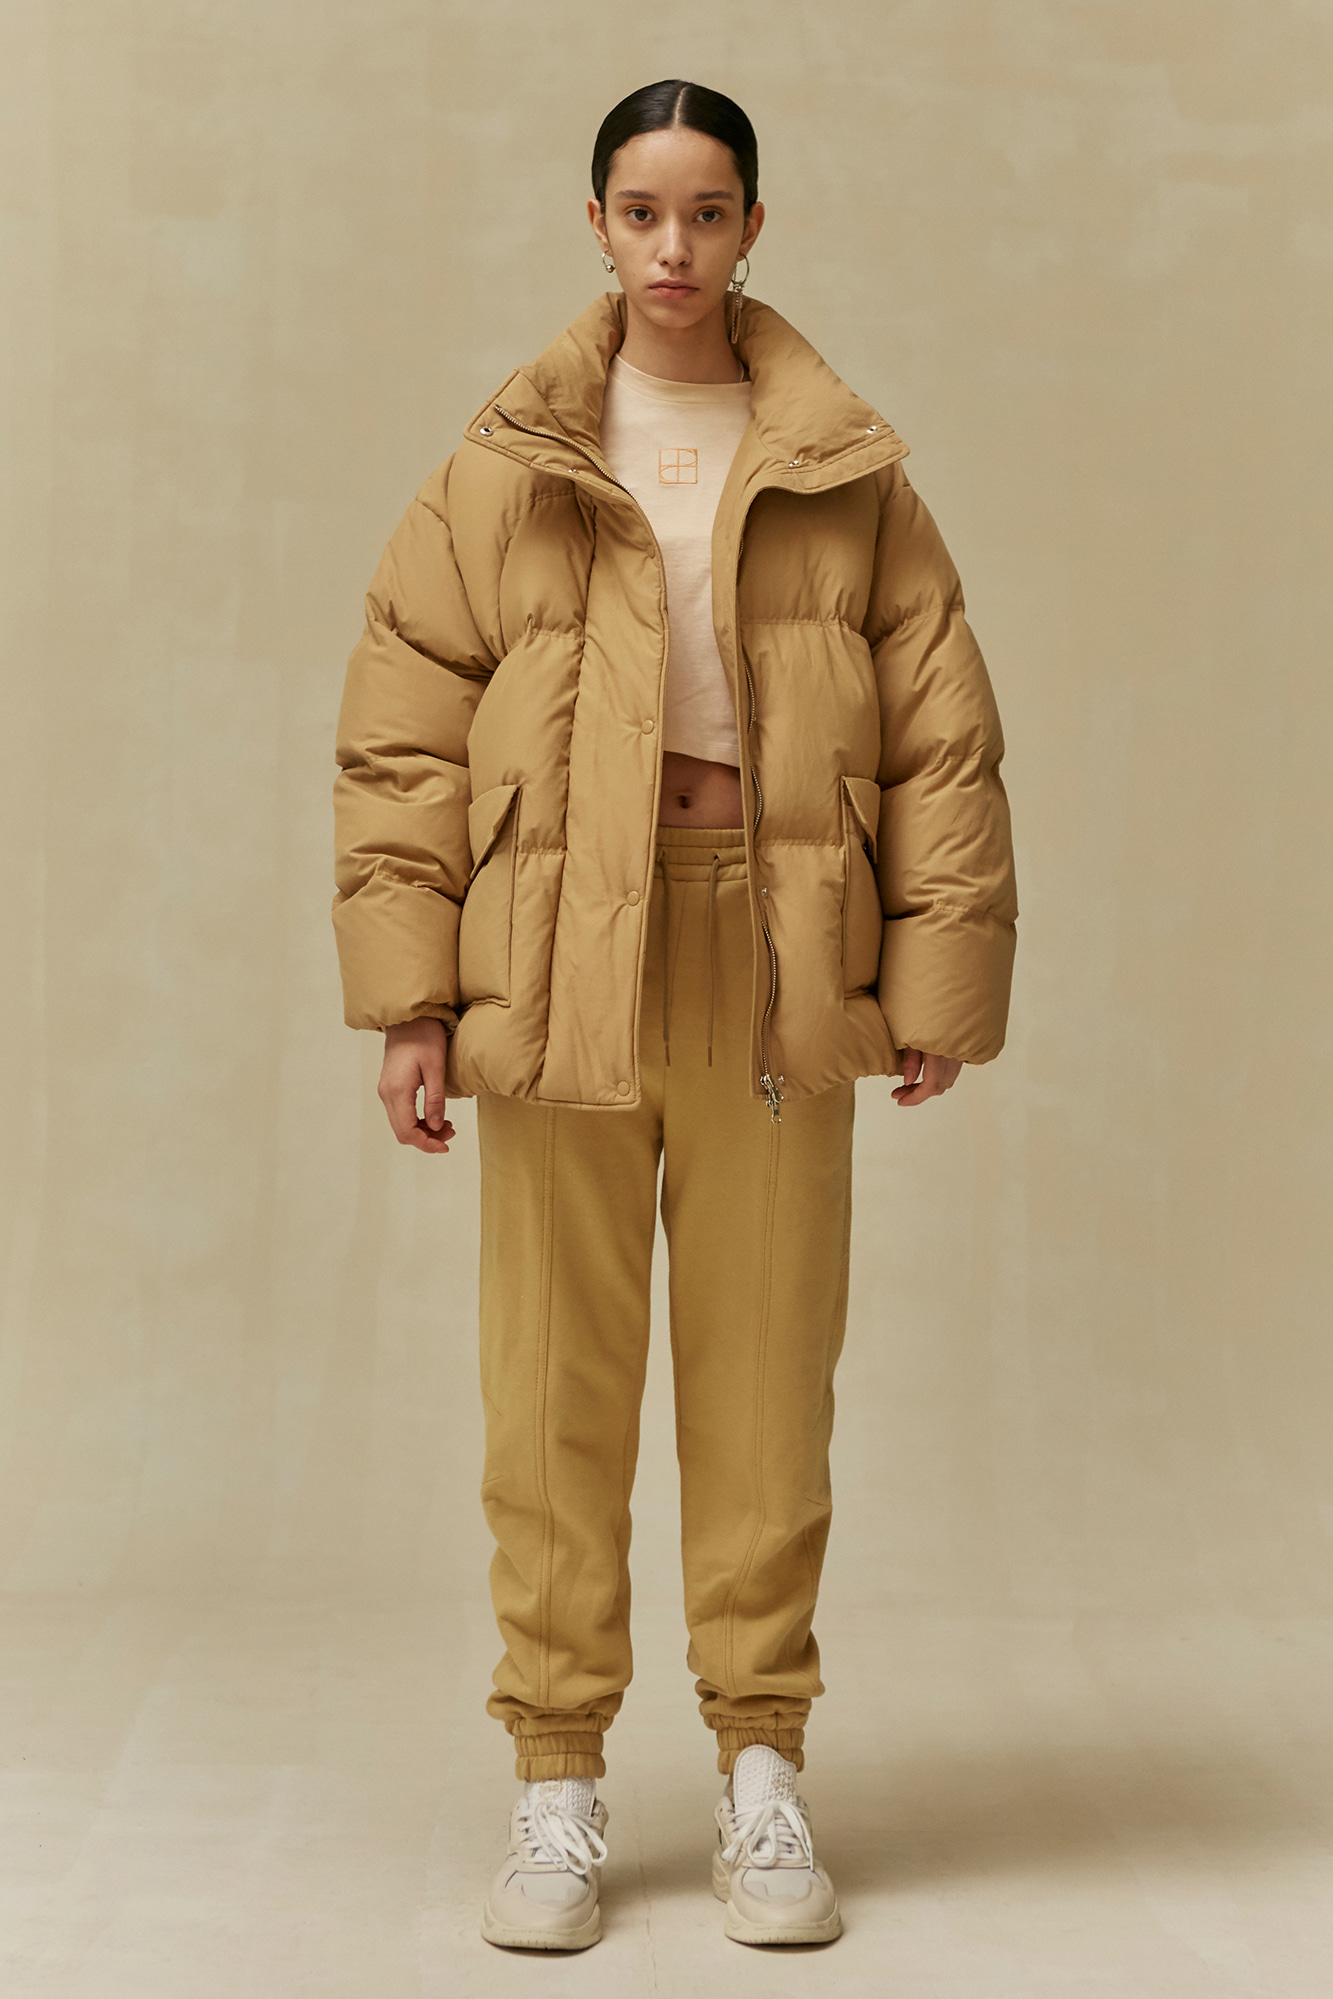 19 WINTER LOCLE OVER FIT DUCKDOWN JACKET - CAMEL